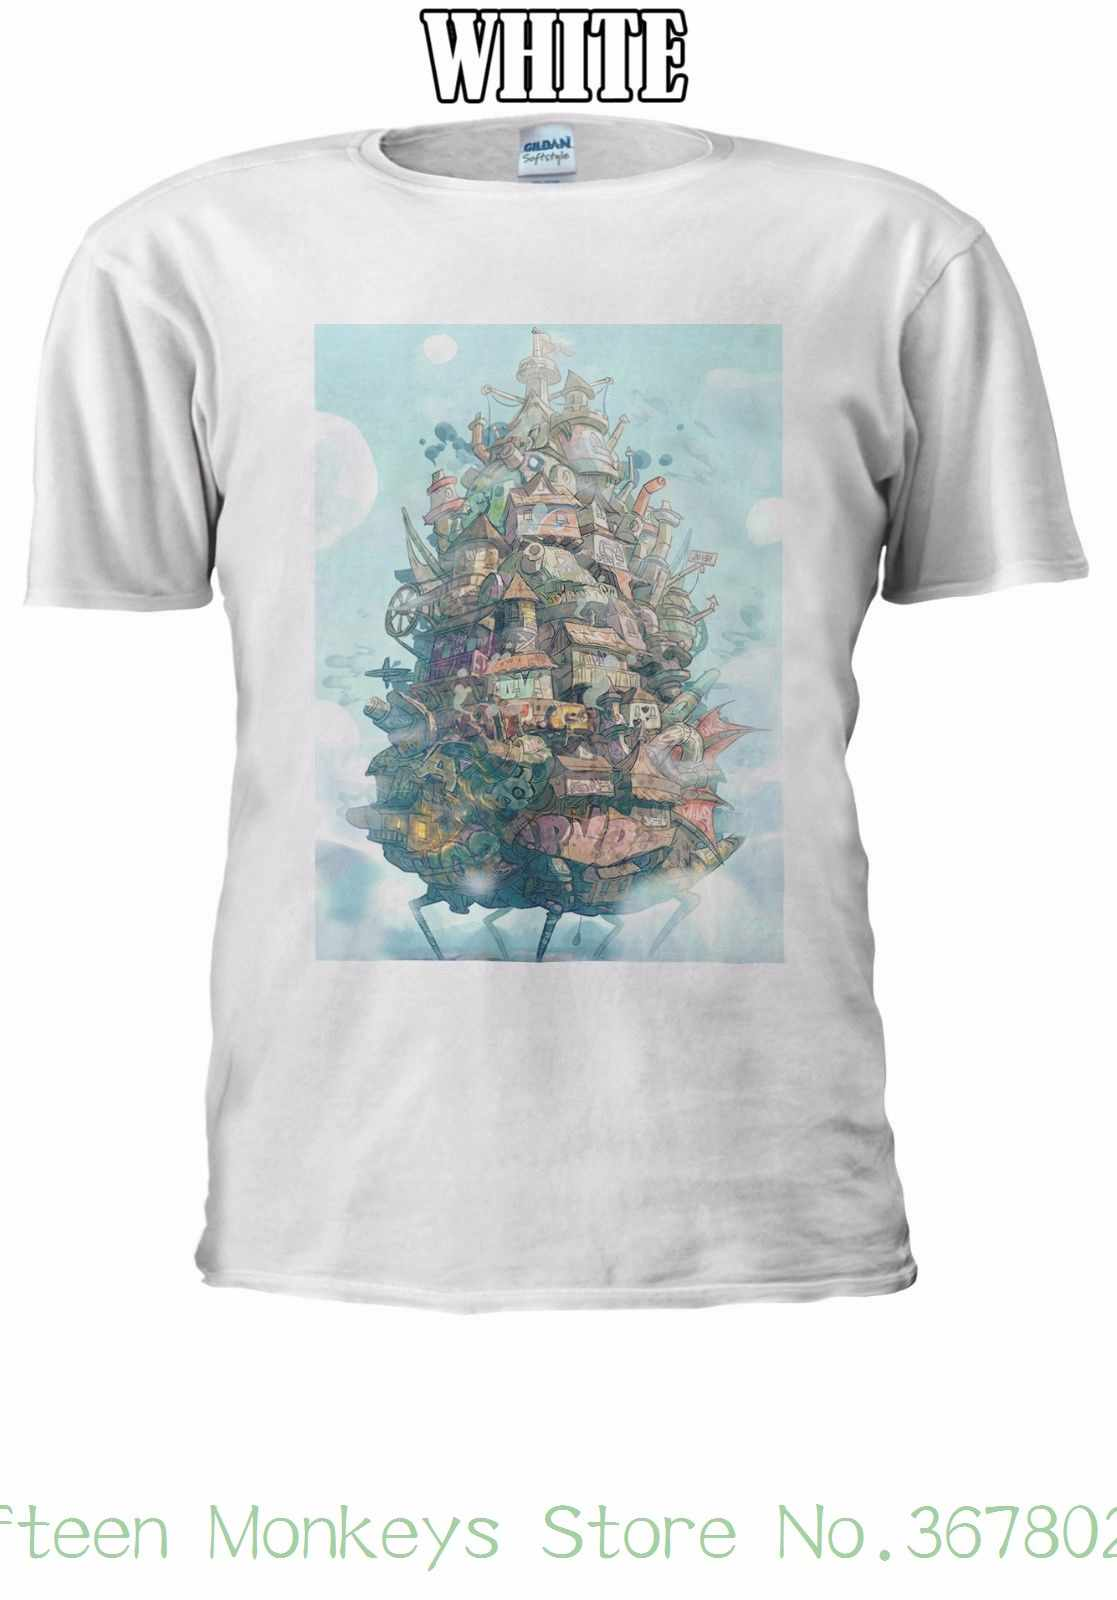 Women's Tee Howl's Moving Castle Art T-shirt Men Women Unisex 2525 Design Tops Hot Sales clothing Shirts